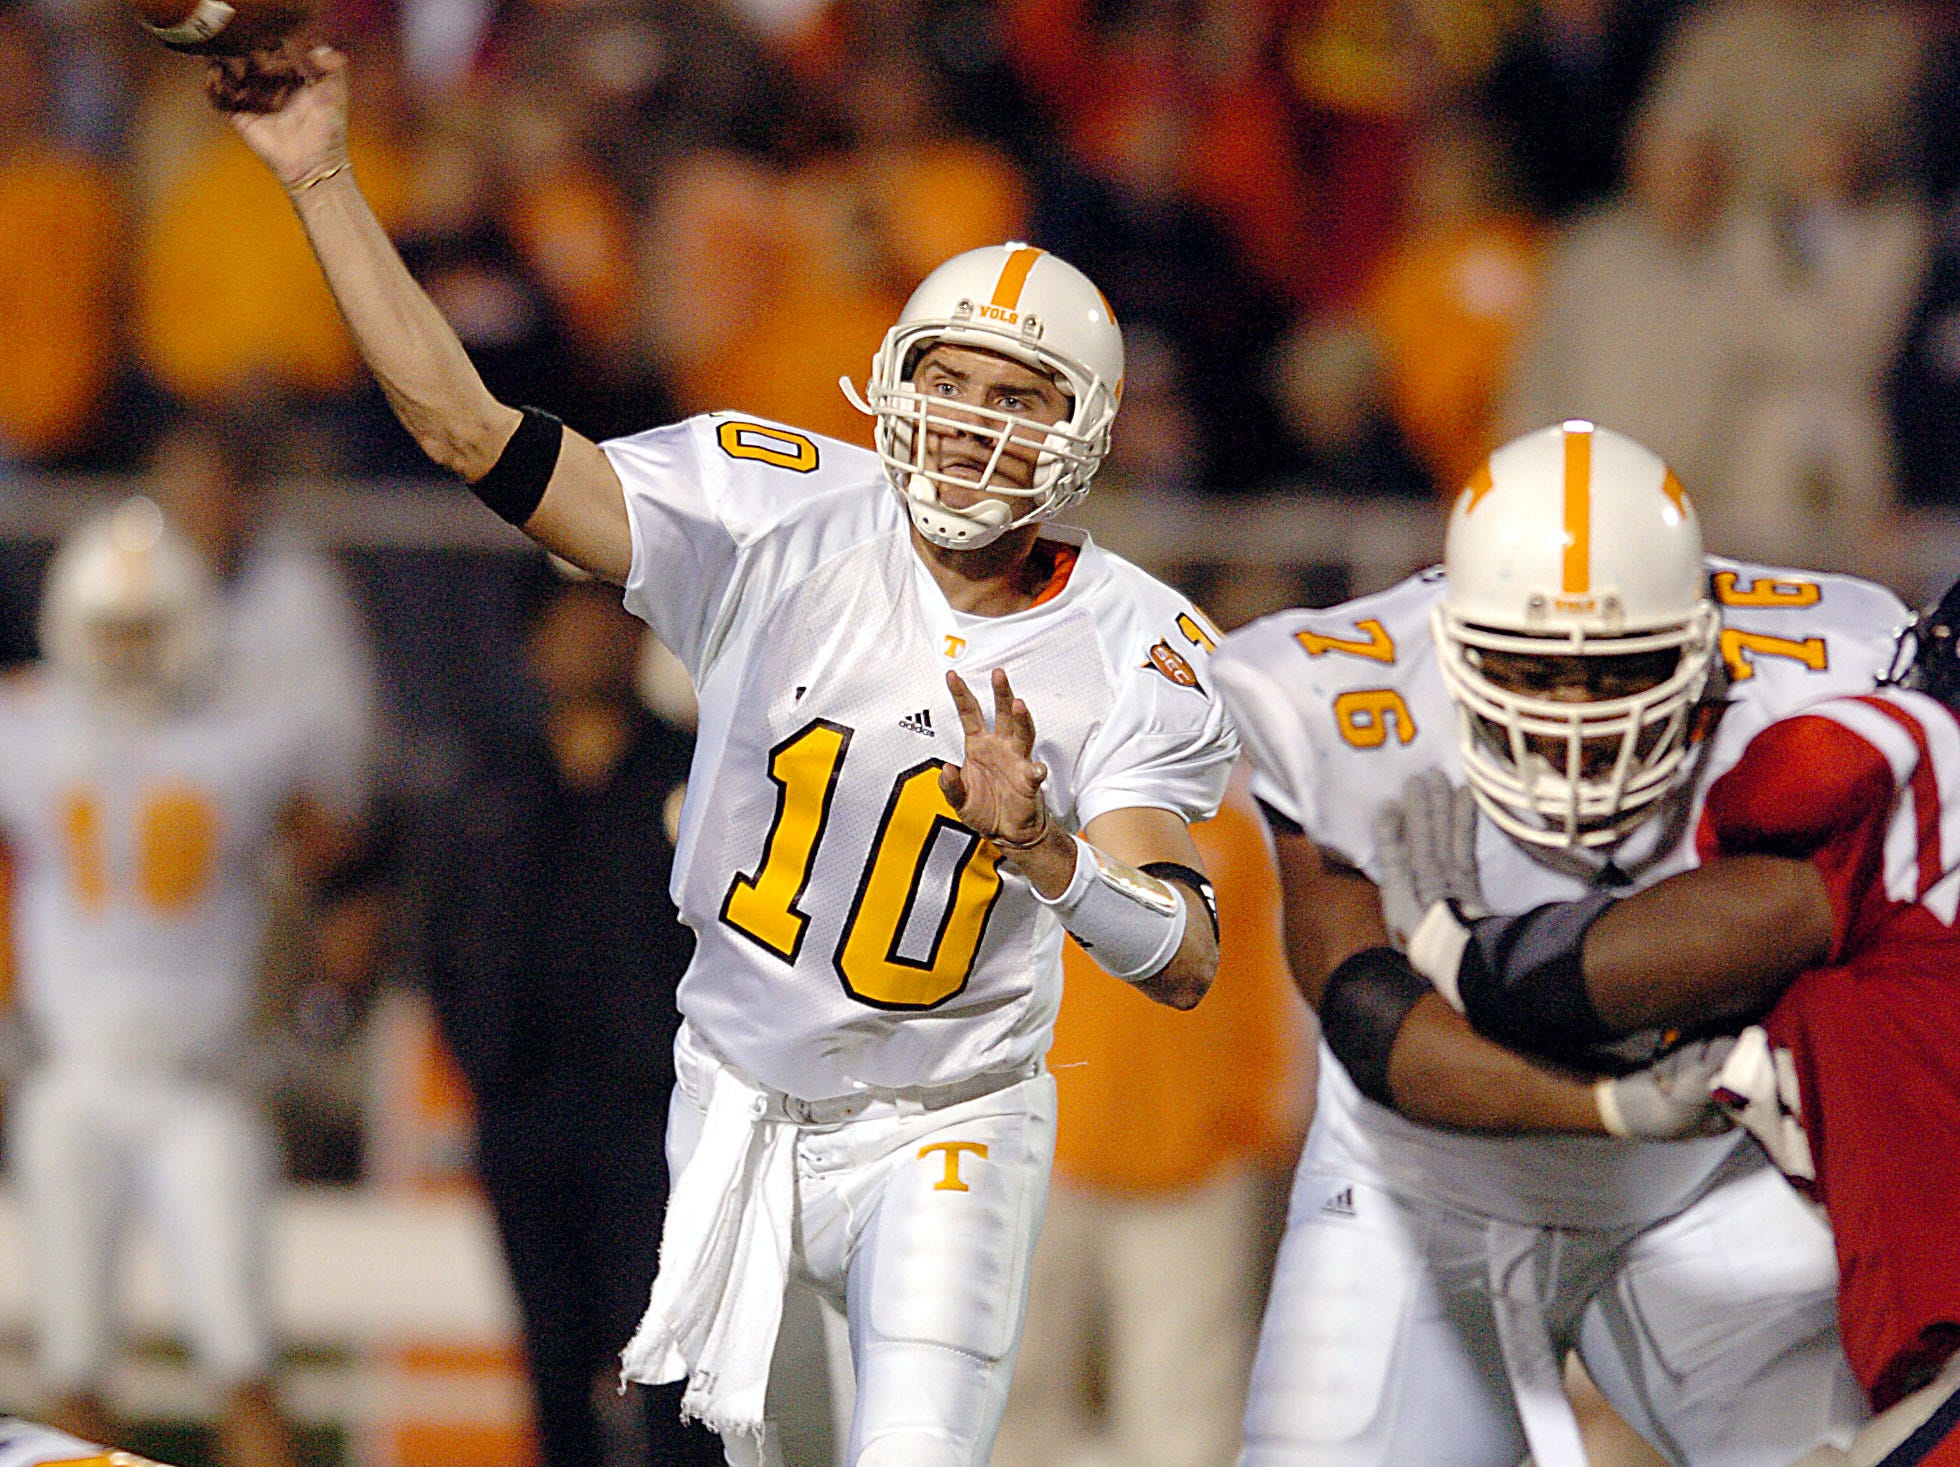 Tennessee quarterback (10) Erik Ainge has time to pass with protection from lineman (76) Aaron Sears during third quarter action against Ole Miss Saturday, Oct. 16, 2004.